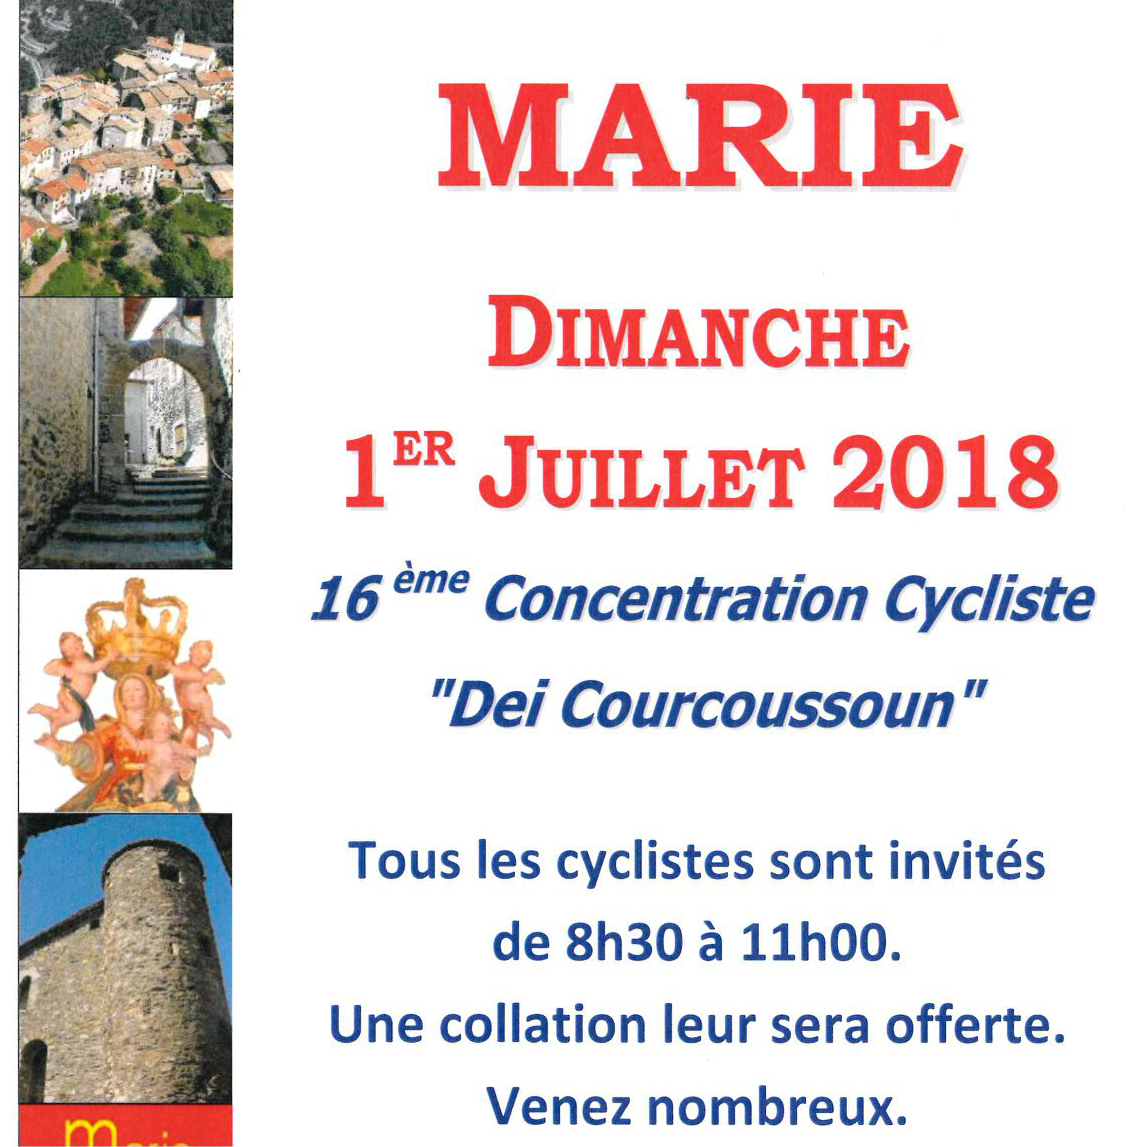 18 07 01 concentration cycliste 1